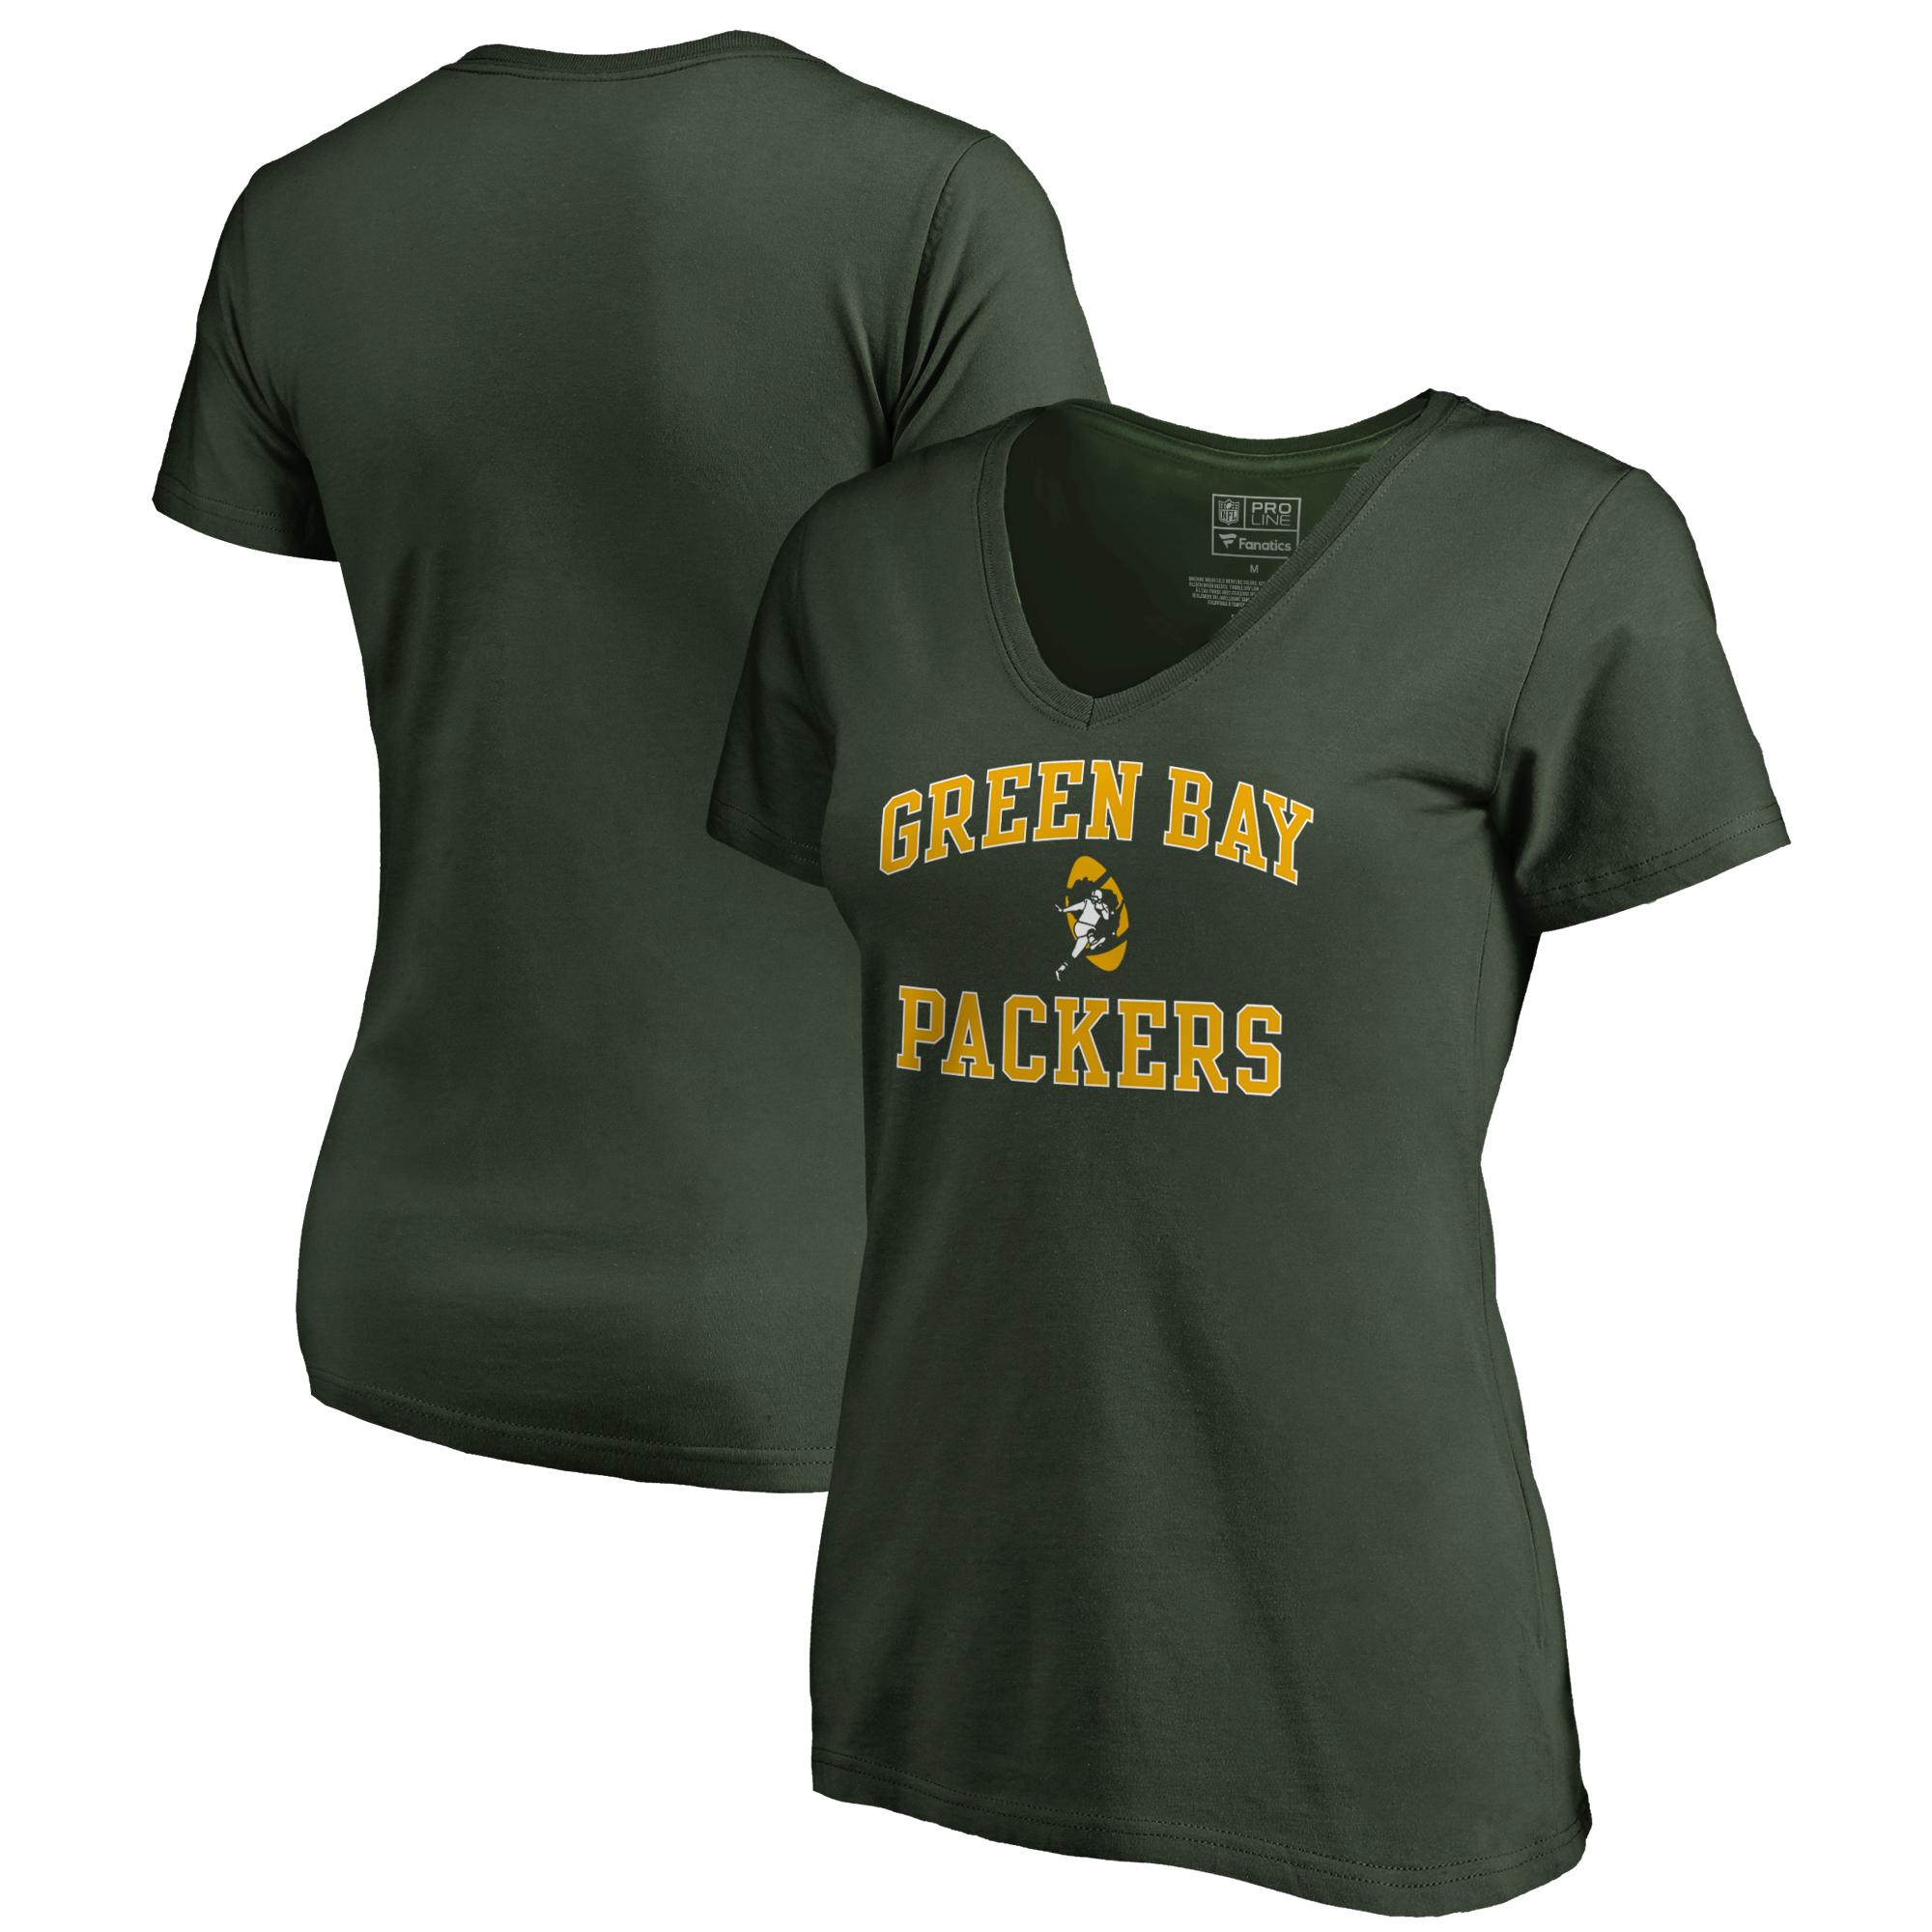 Green Bay Packers NFL Pro Line by Fanatics Branded Women's Vintage Collection Victory Arch V-Neck T-Shirt - Green